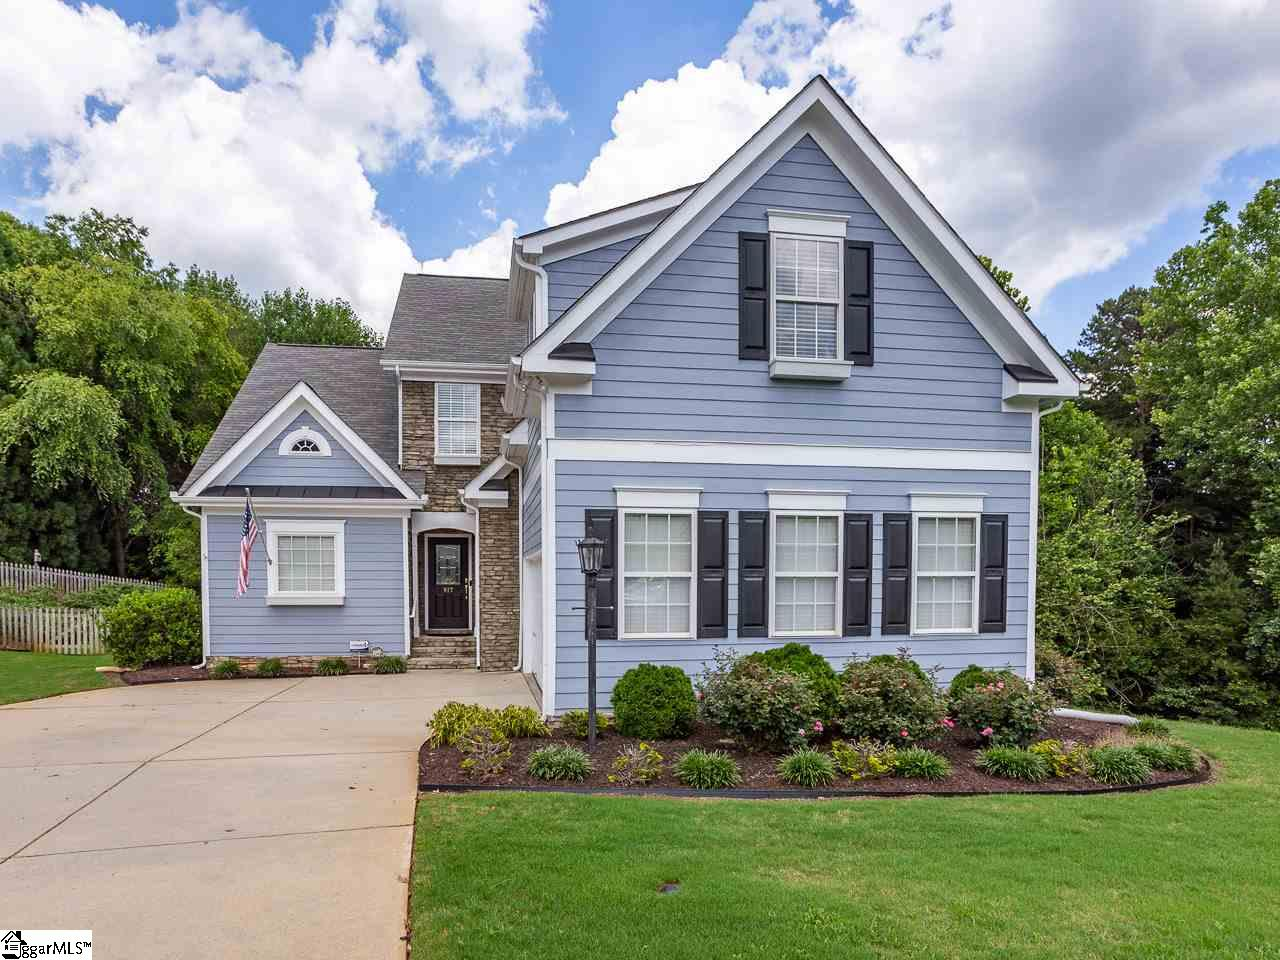 817 Waterwalk Duncan, SC 29334